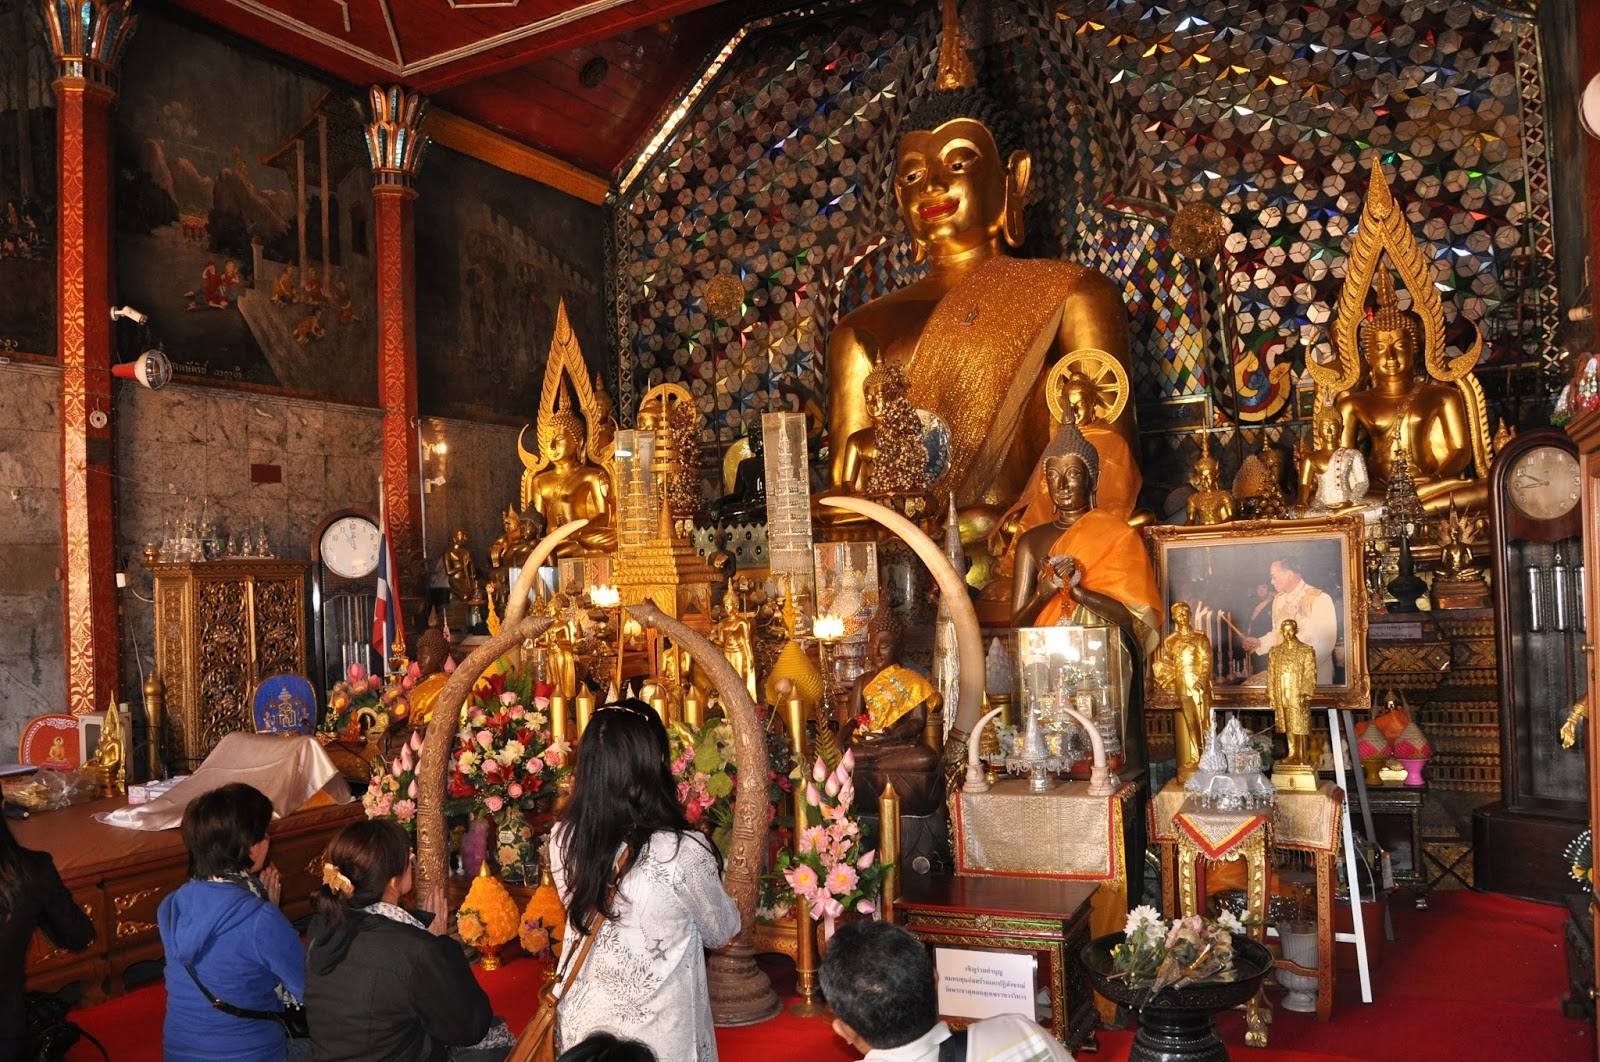 One Of The Most Important Influences On Thai Culture Has Been Buddhism Many Traditions And Beliefs People In Thailand Stem Directly From